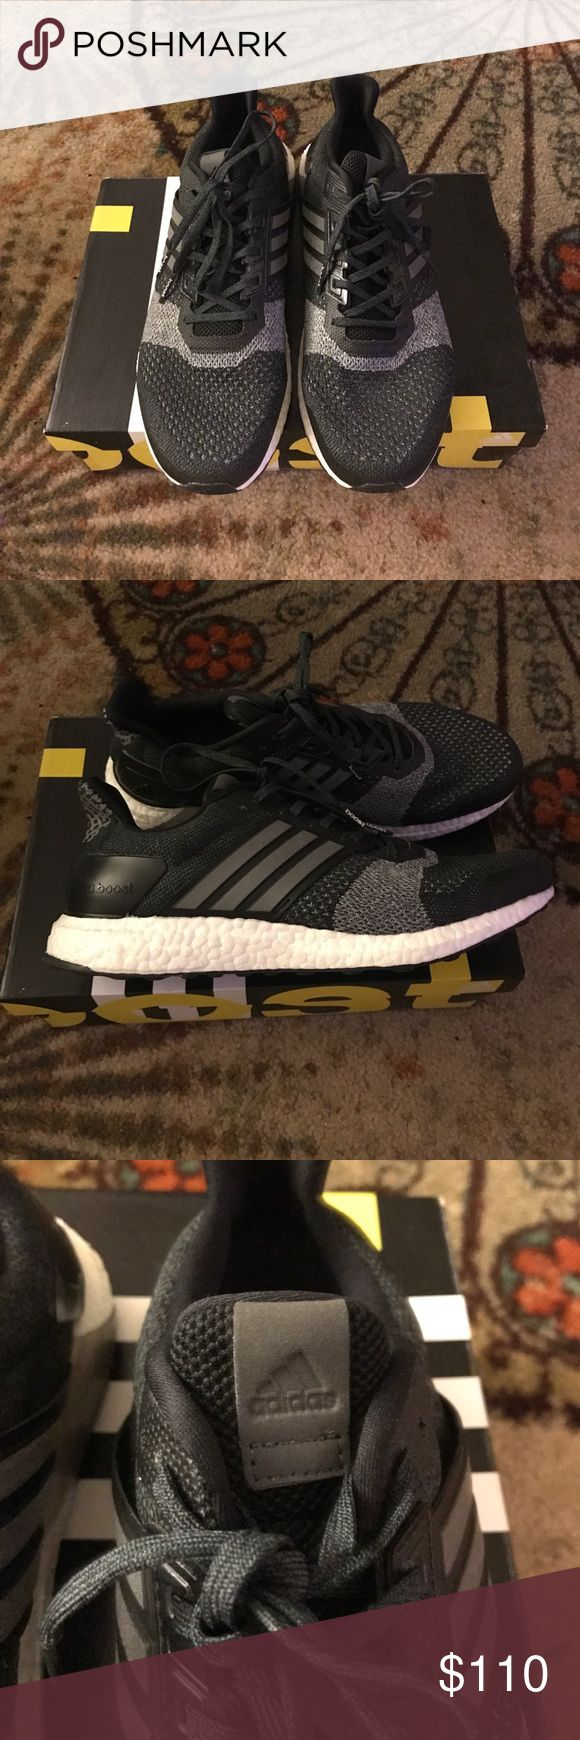 Adidas ultra boost st Black, white, and grey men's adidas ultra boost st. Size 10.5. Worn once. adidas Shoes Athletic Shoes